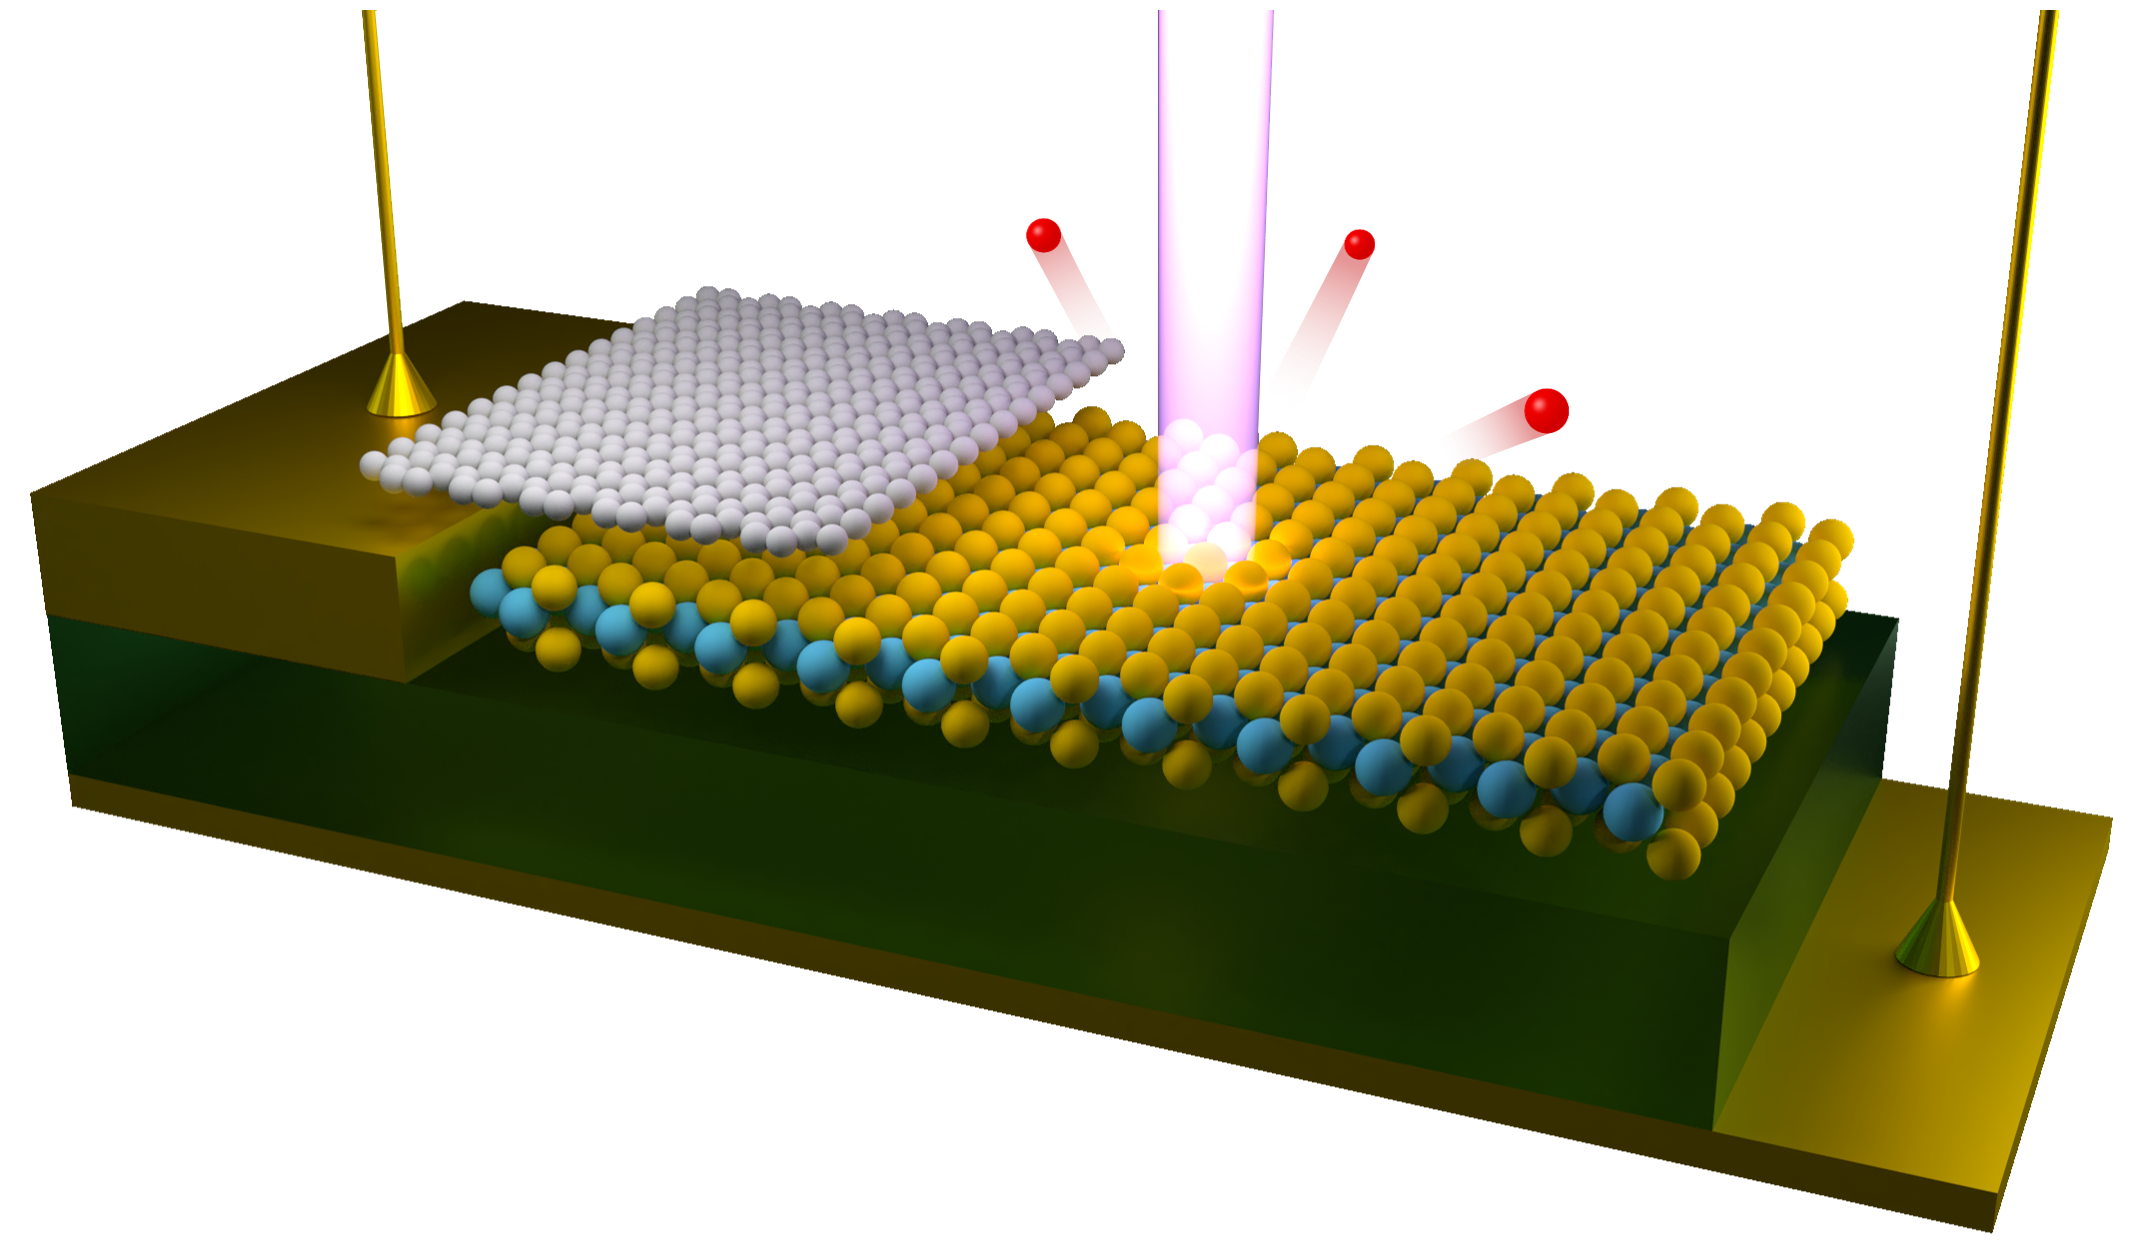 First-ever visualizations of electrical gating effects on